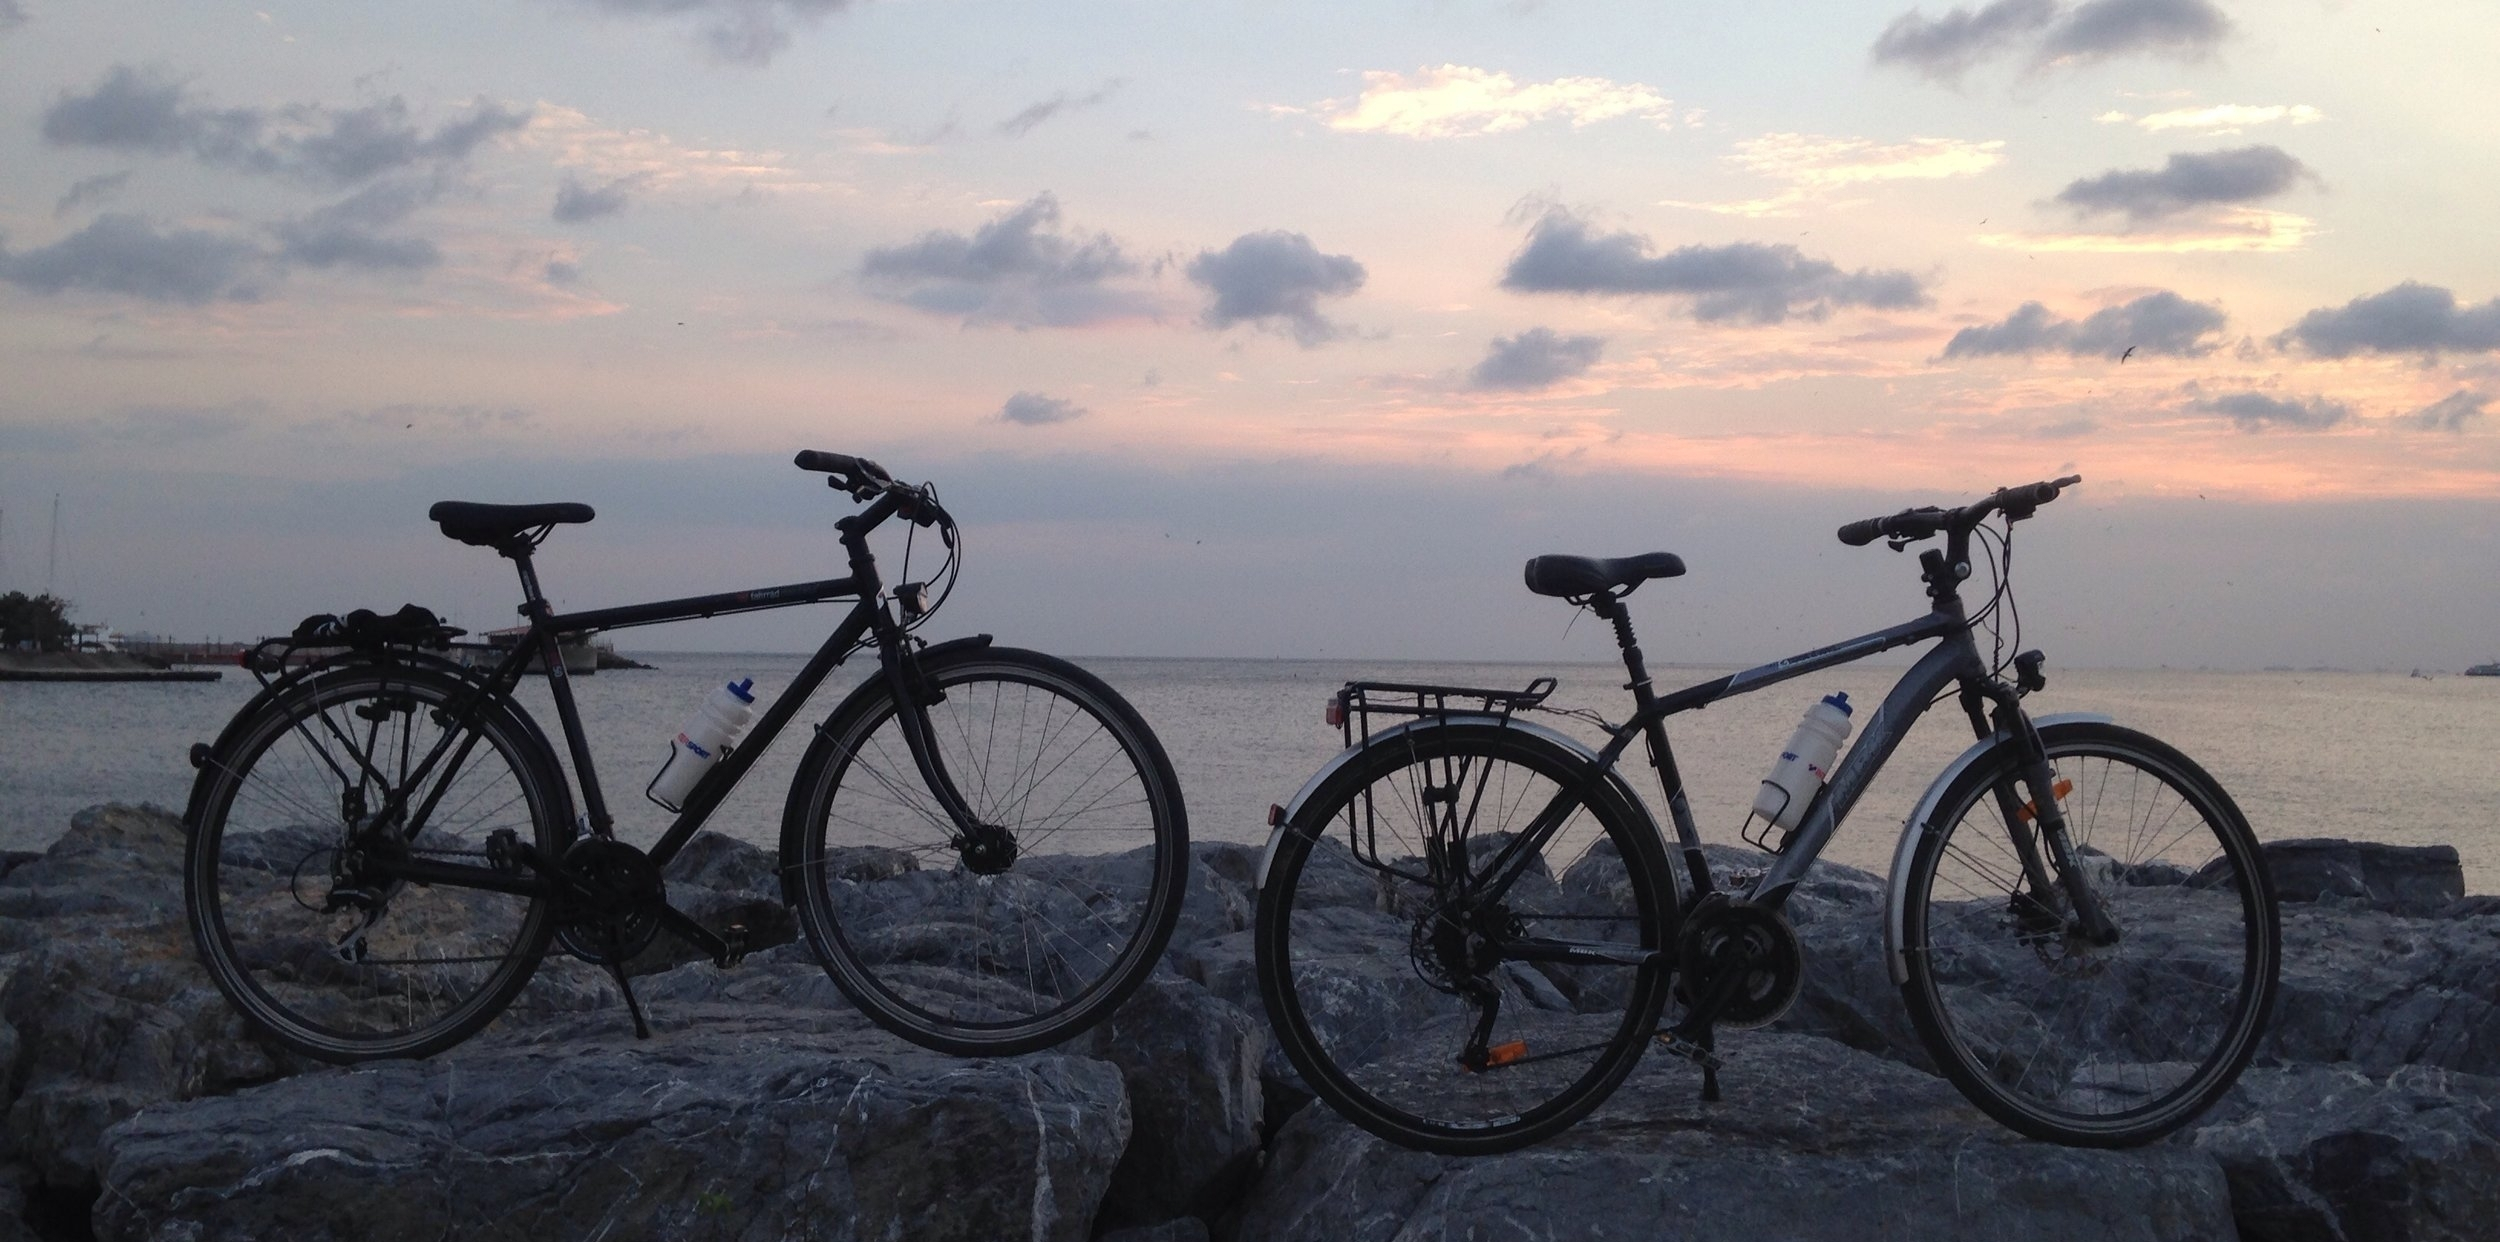 Our trusty steeds enjoying a day off in İstanbul:Ben´s on the left and Manon´s on the right.